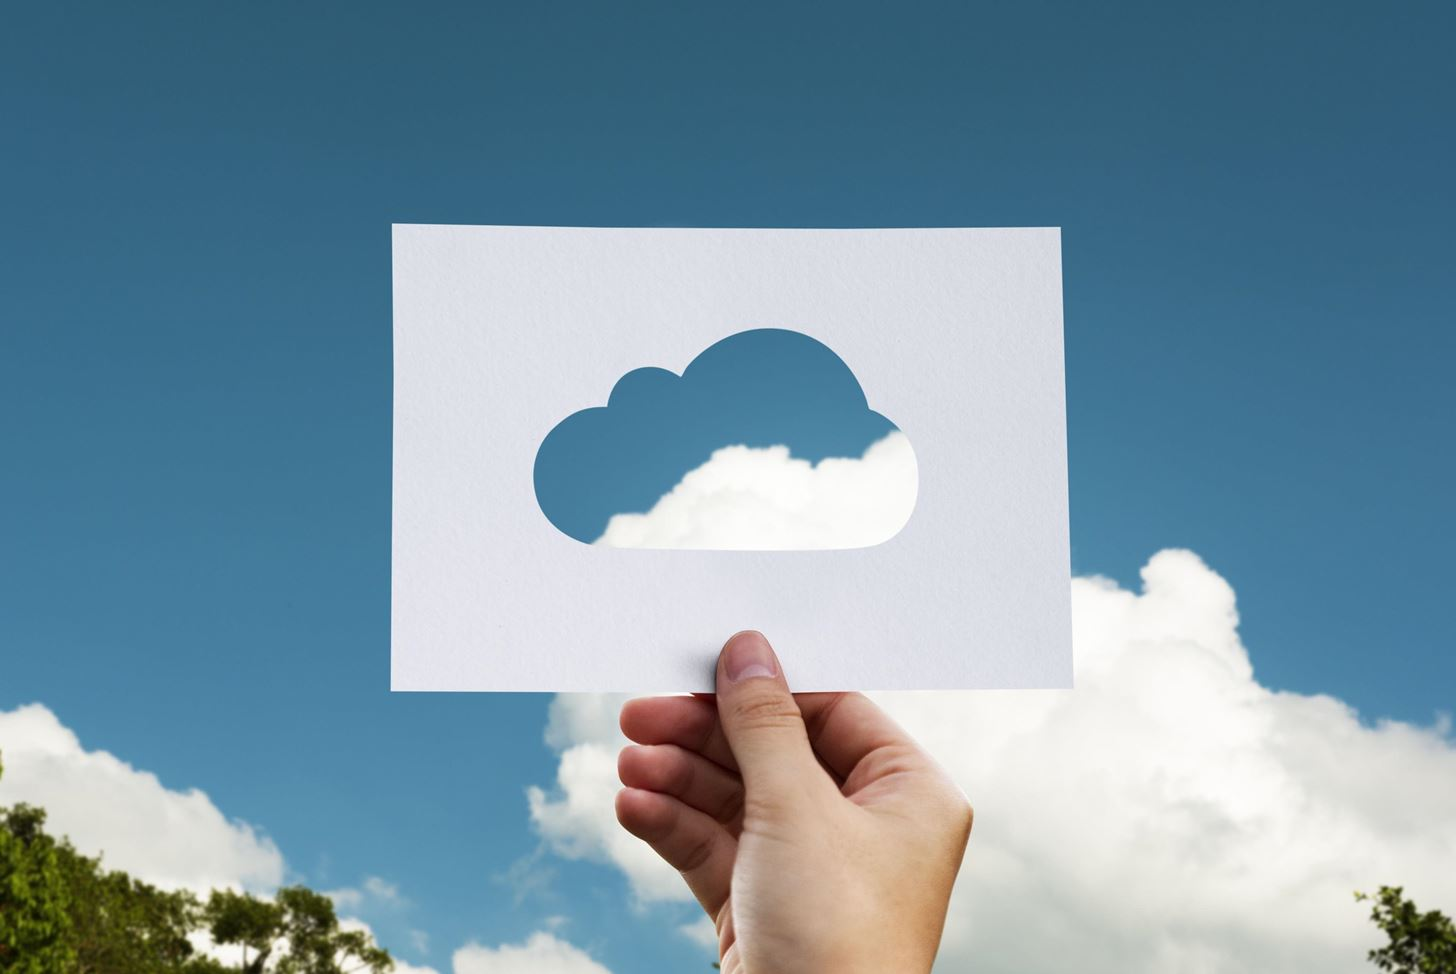 All You Need to Know About Cloud Computing